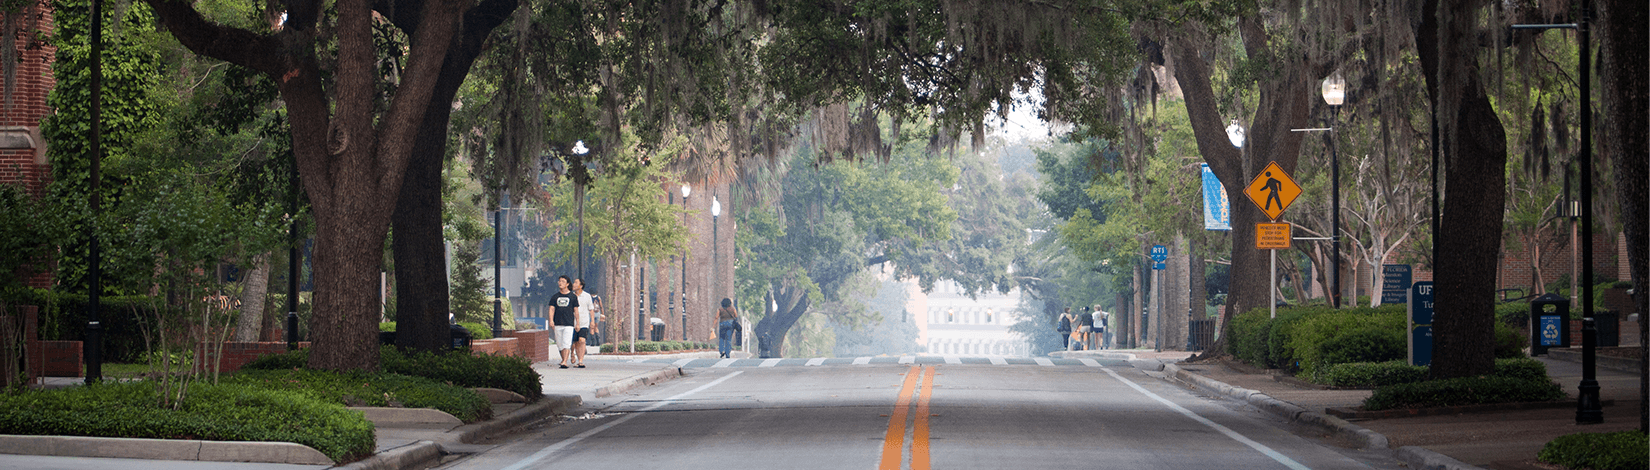 A street view of UF